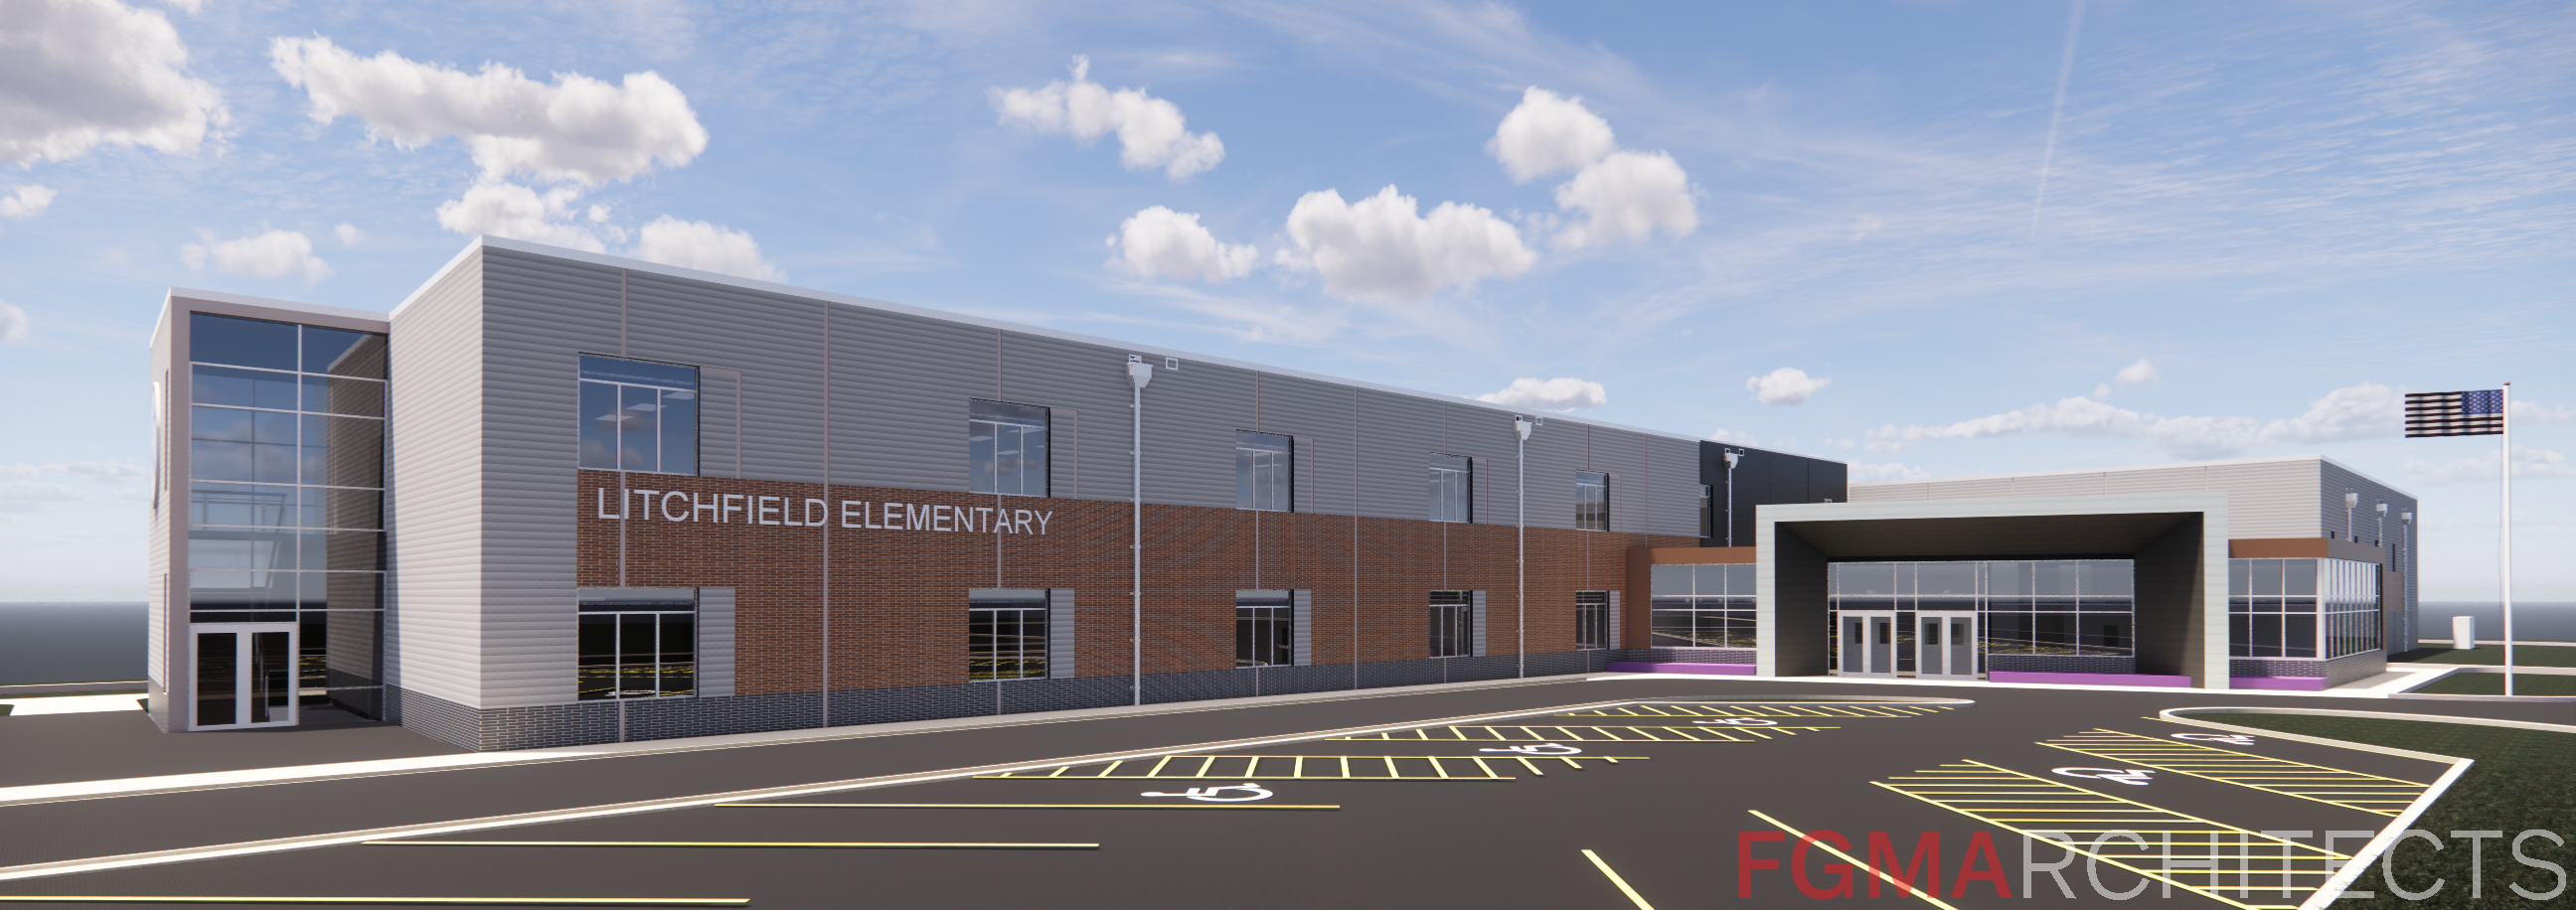 Rendering of new state street school project